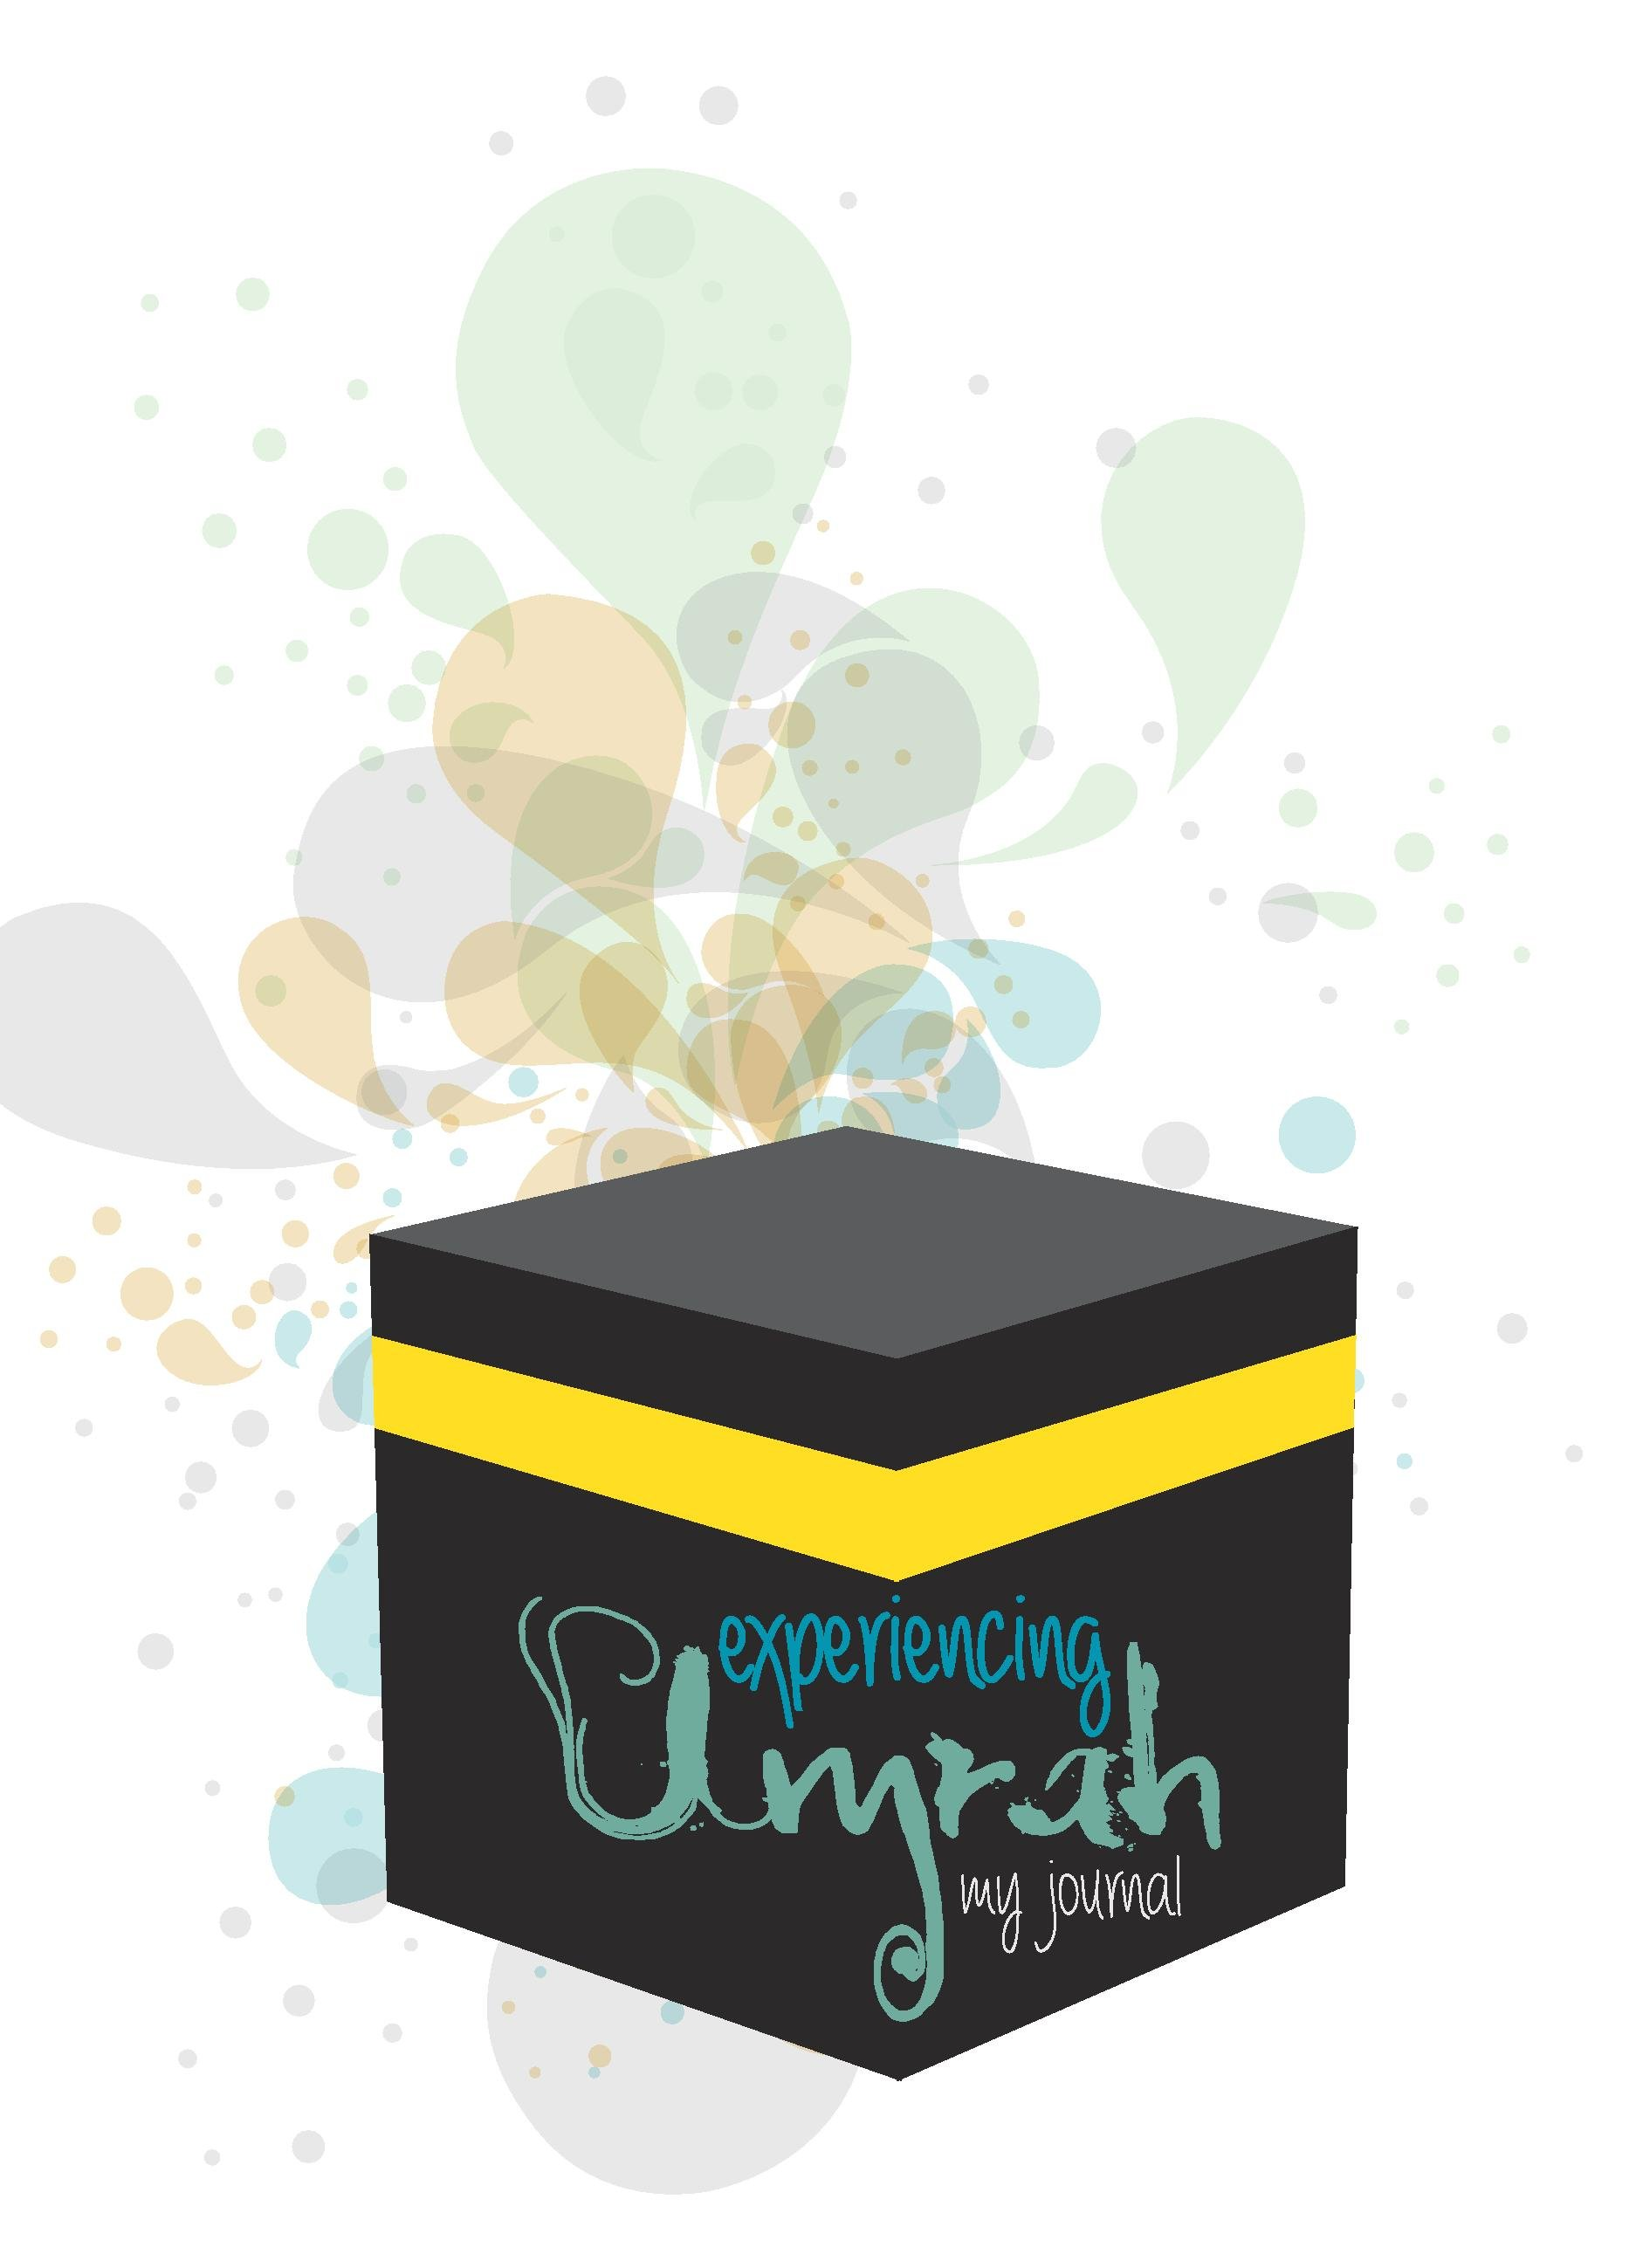 Umrah Idea 9: Take Buzz Ideazz's Umrah Journal!